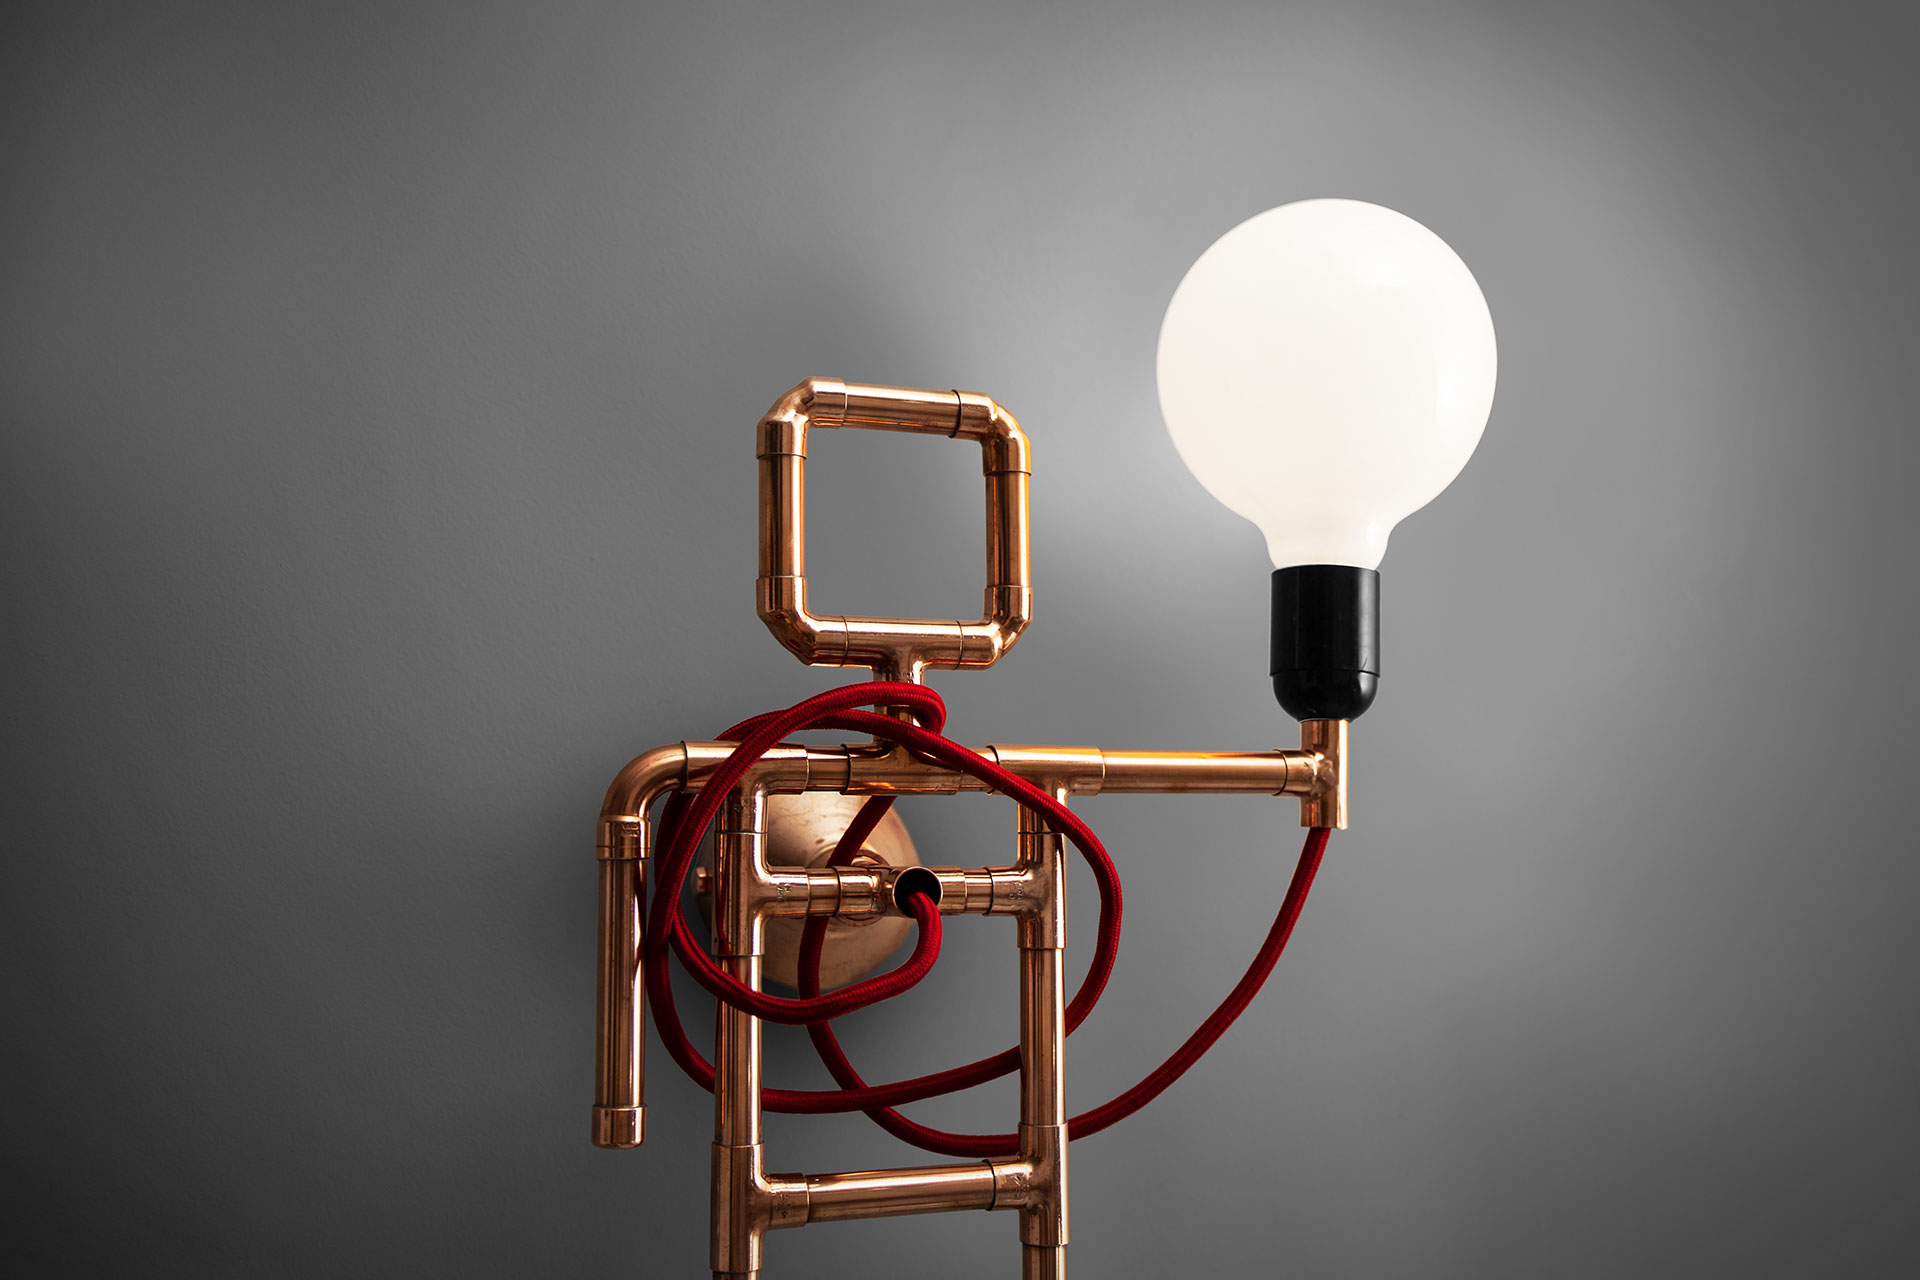 Art wall lamp inspired by industrial design